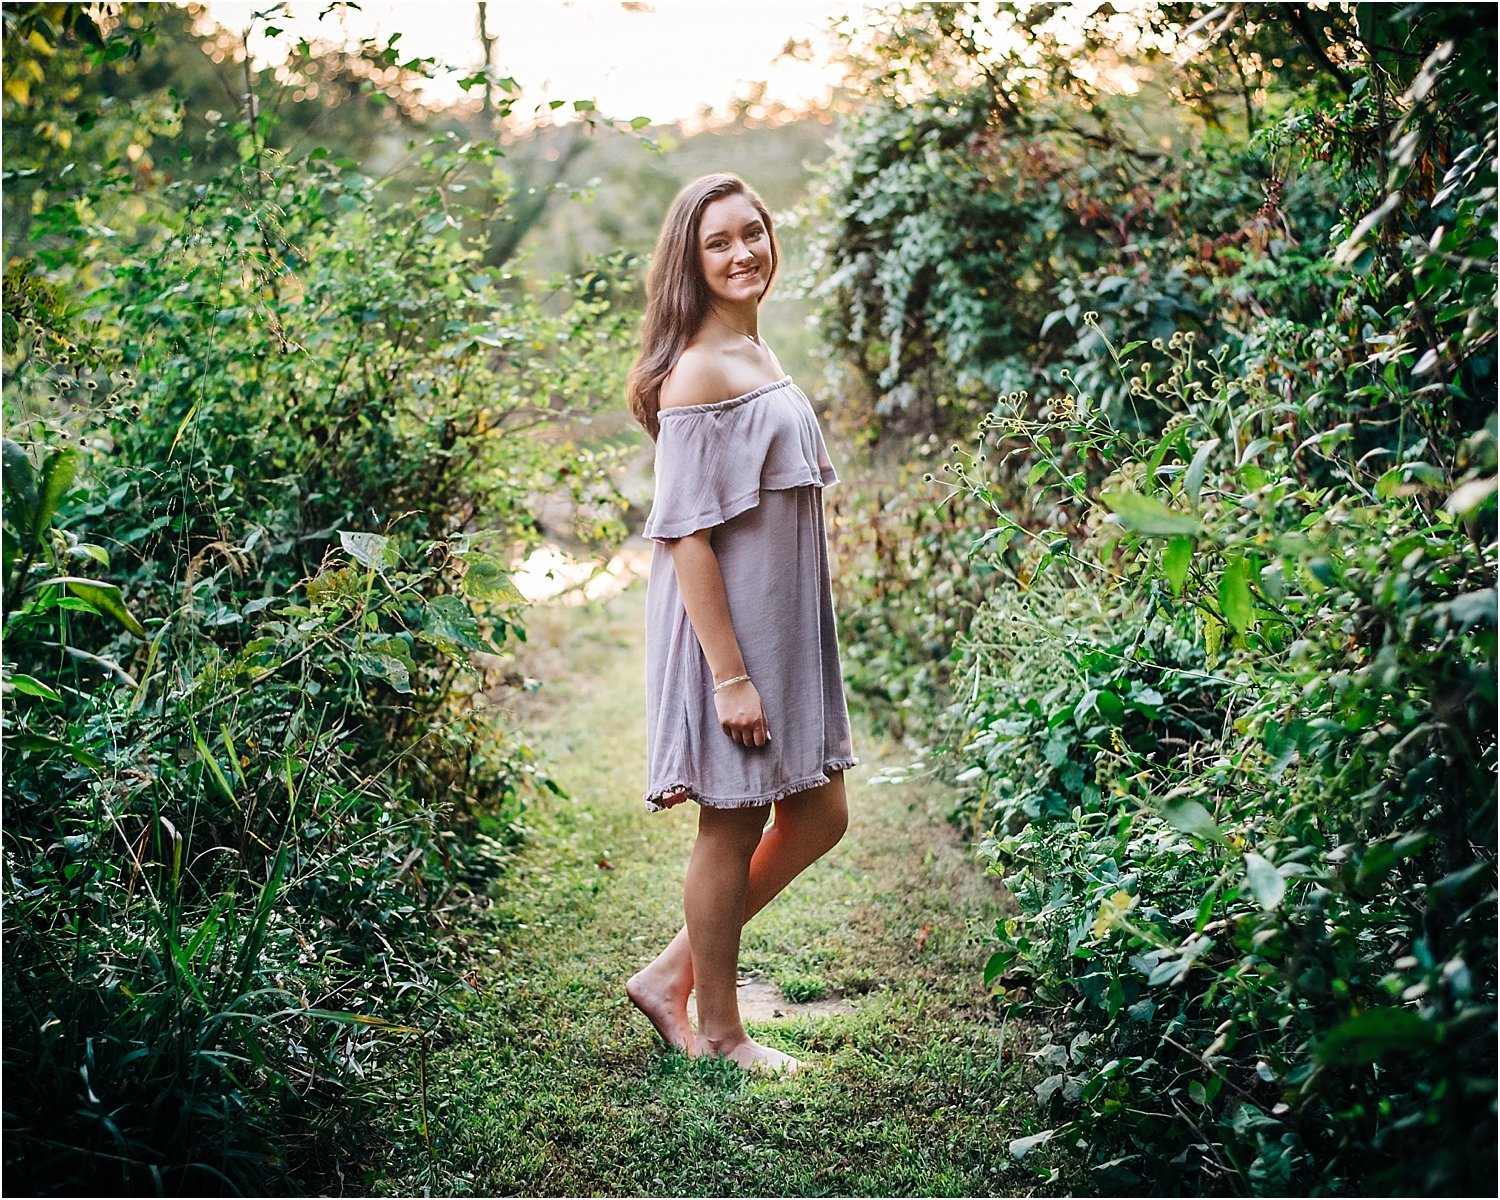 A lovely trail provides a gorgeous backdrop for senior portrait.